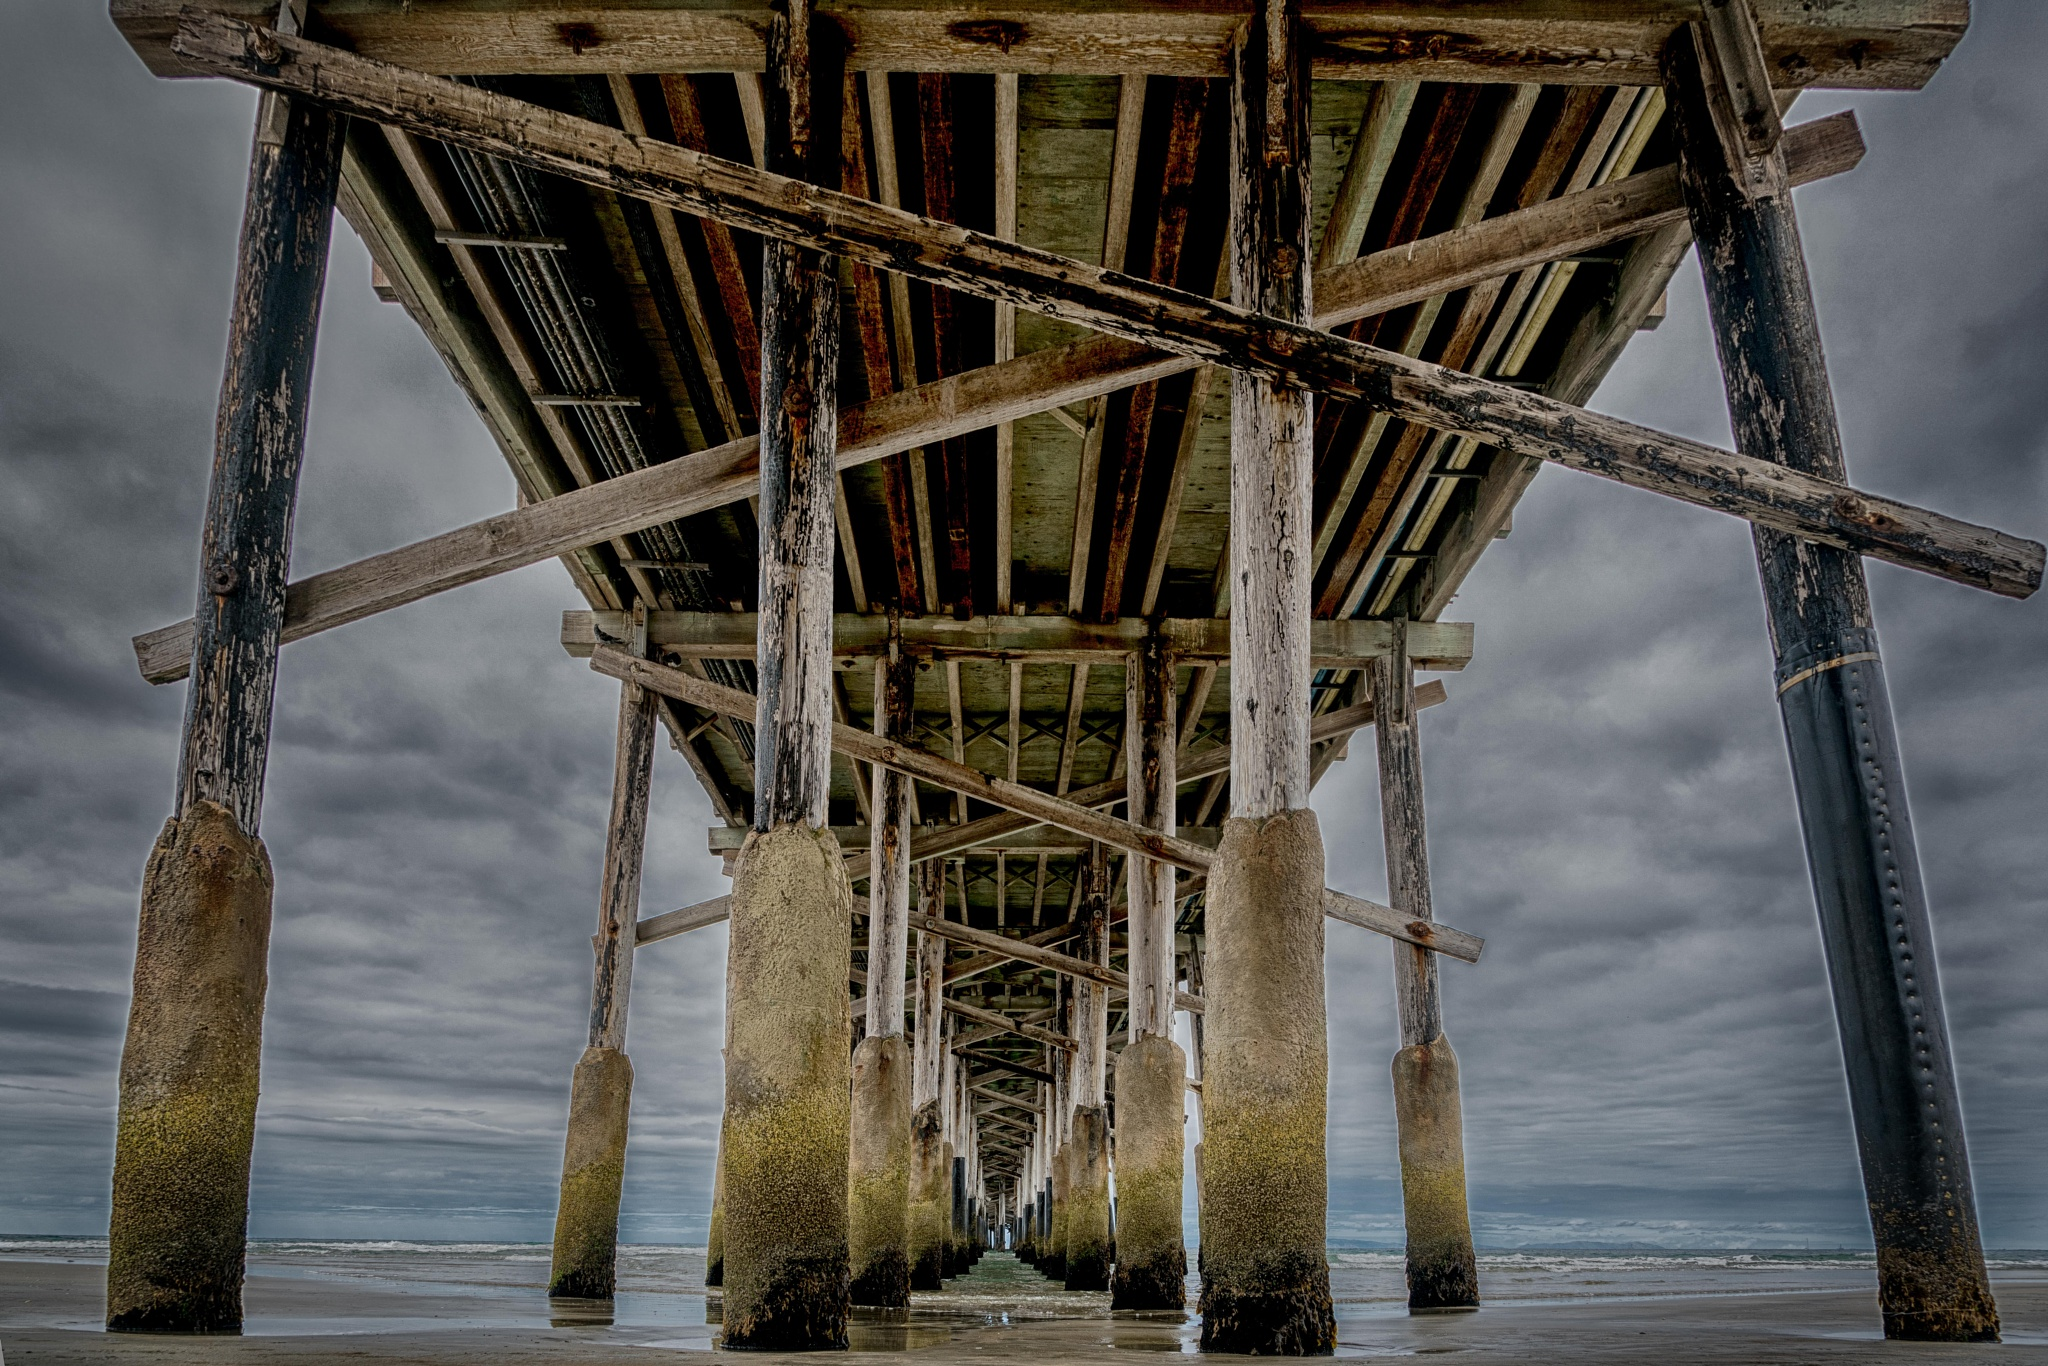 The pier by Craig Turner